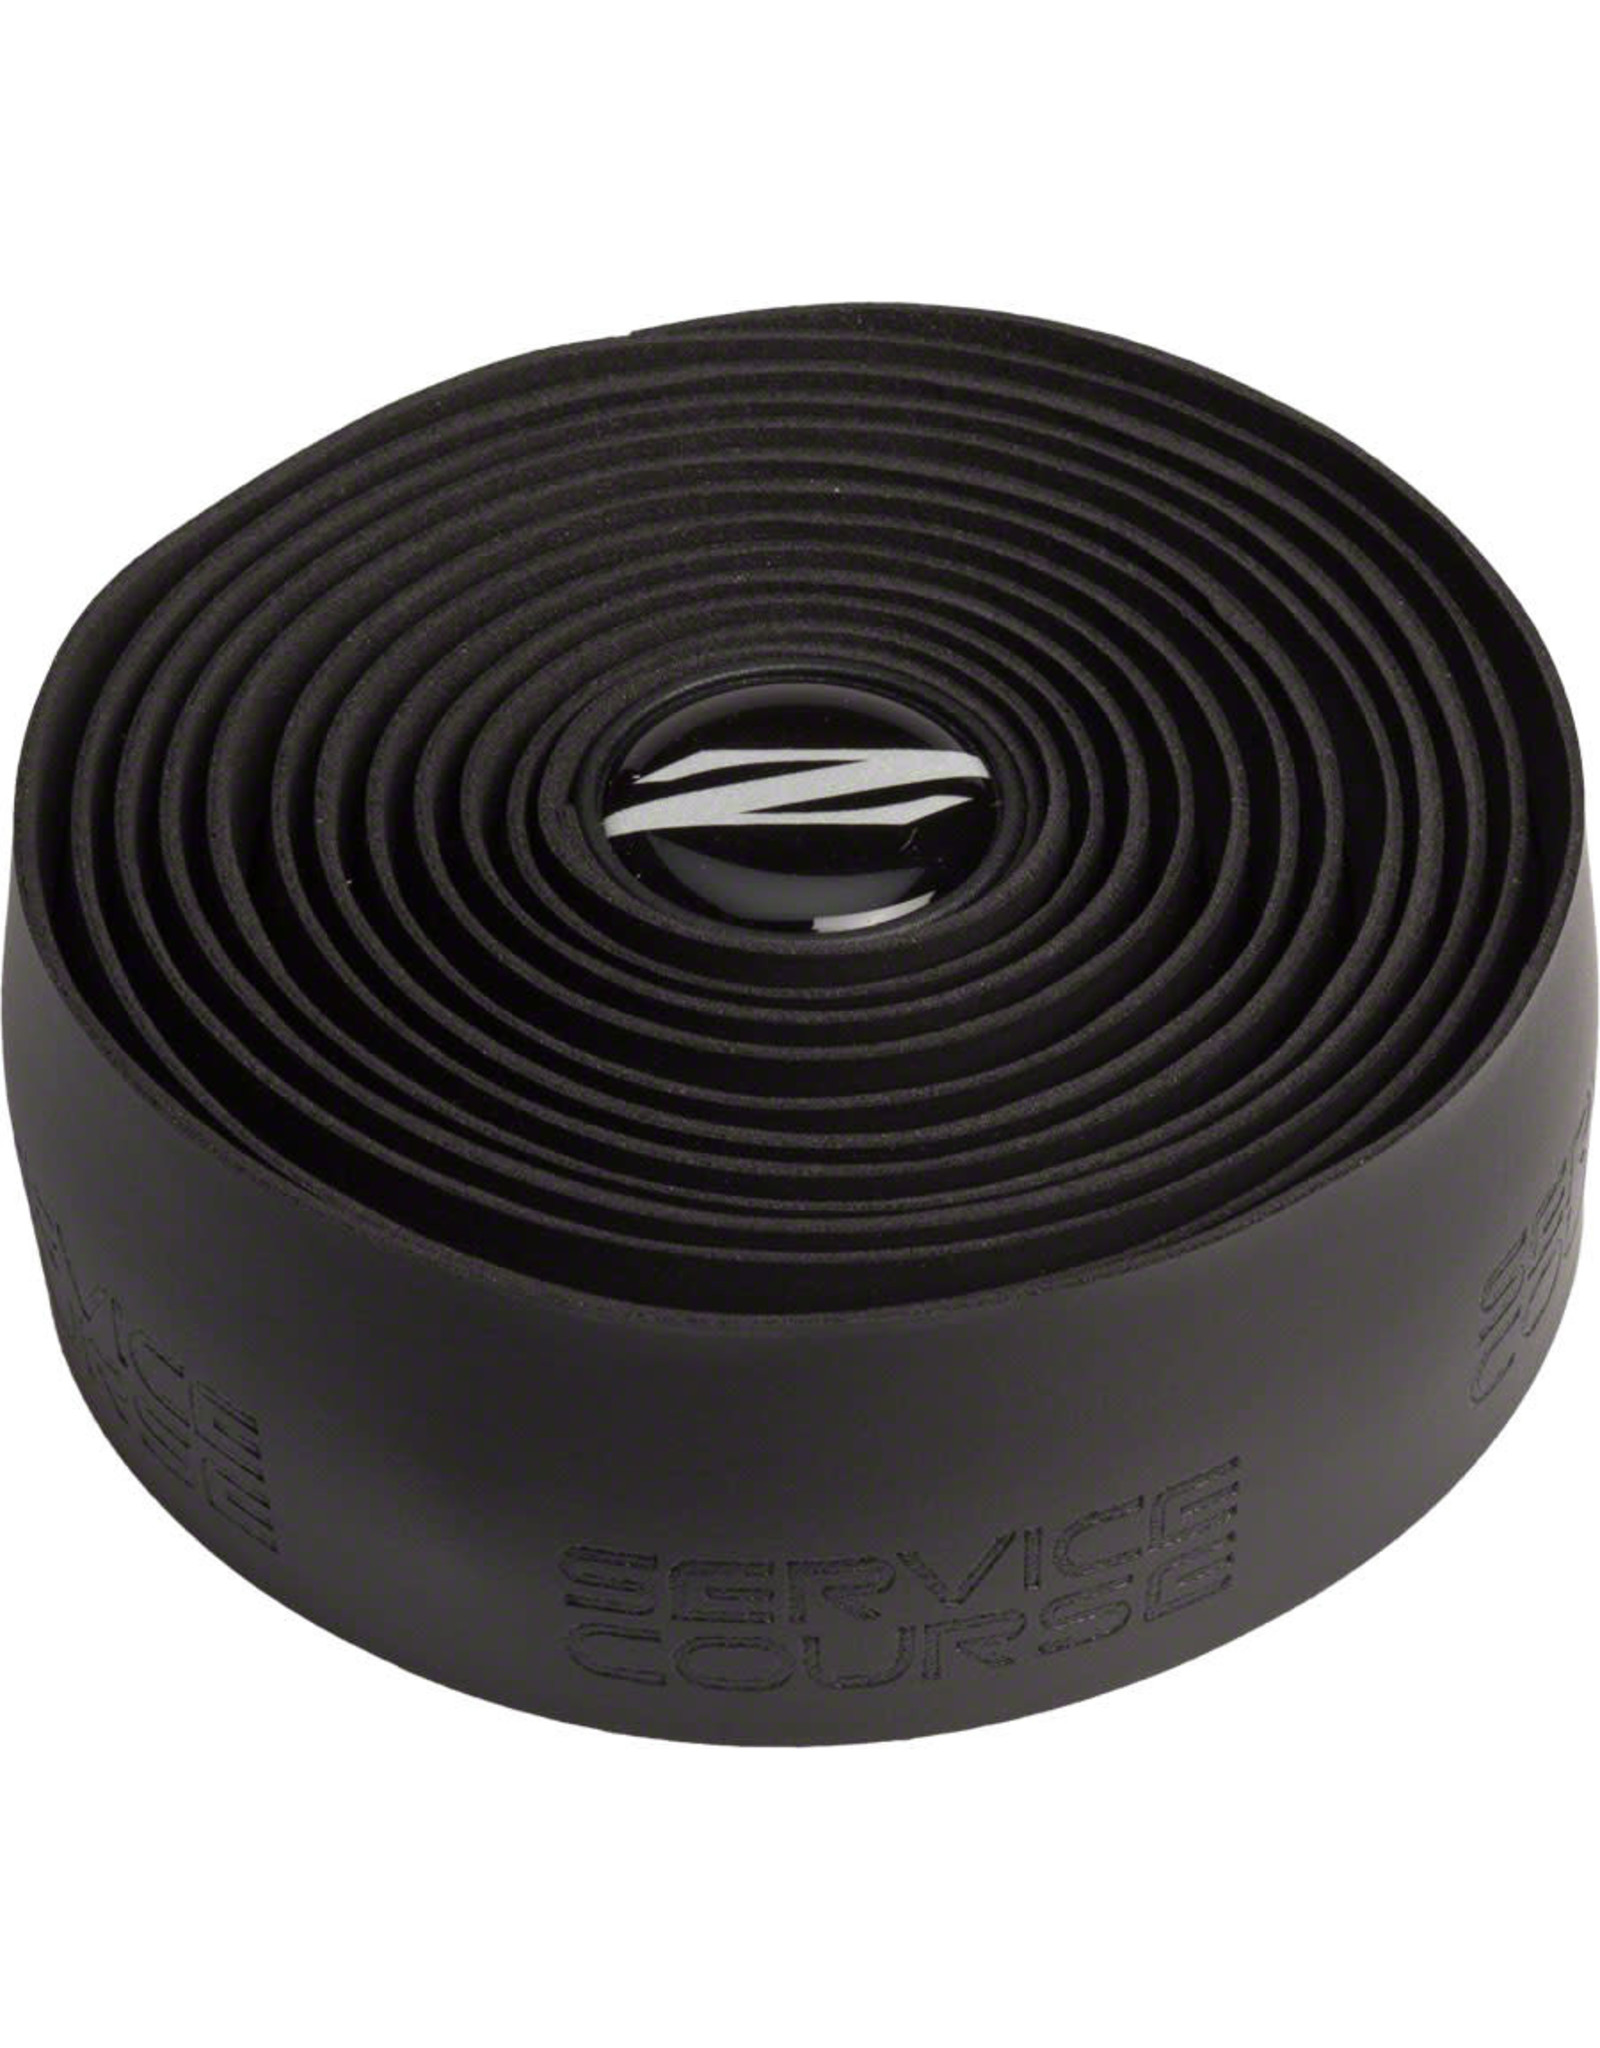 Zipp Speed Weaponry Zipp Speed Weaponry Service Course Handlebar Tape - Black